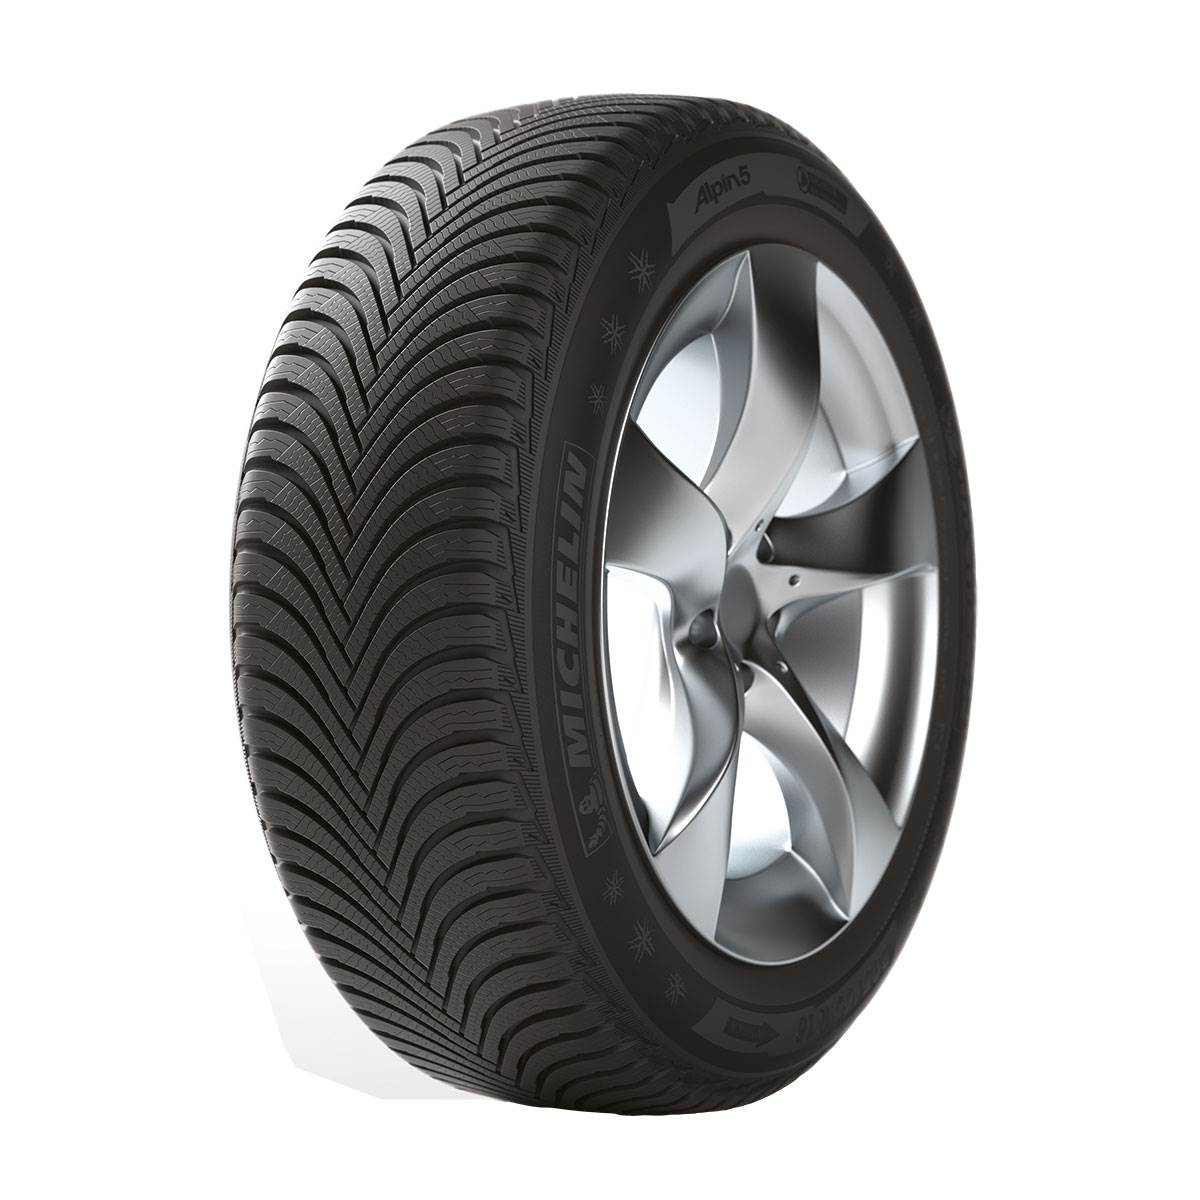 Michelin Alpin 5 Homologue Bmw